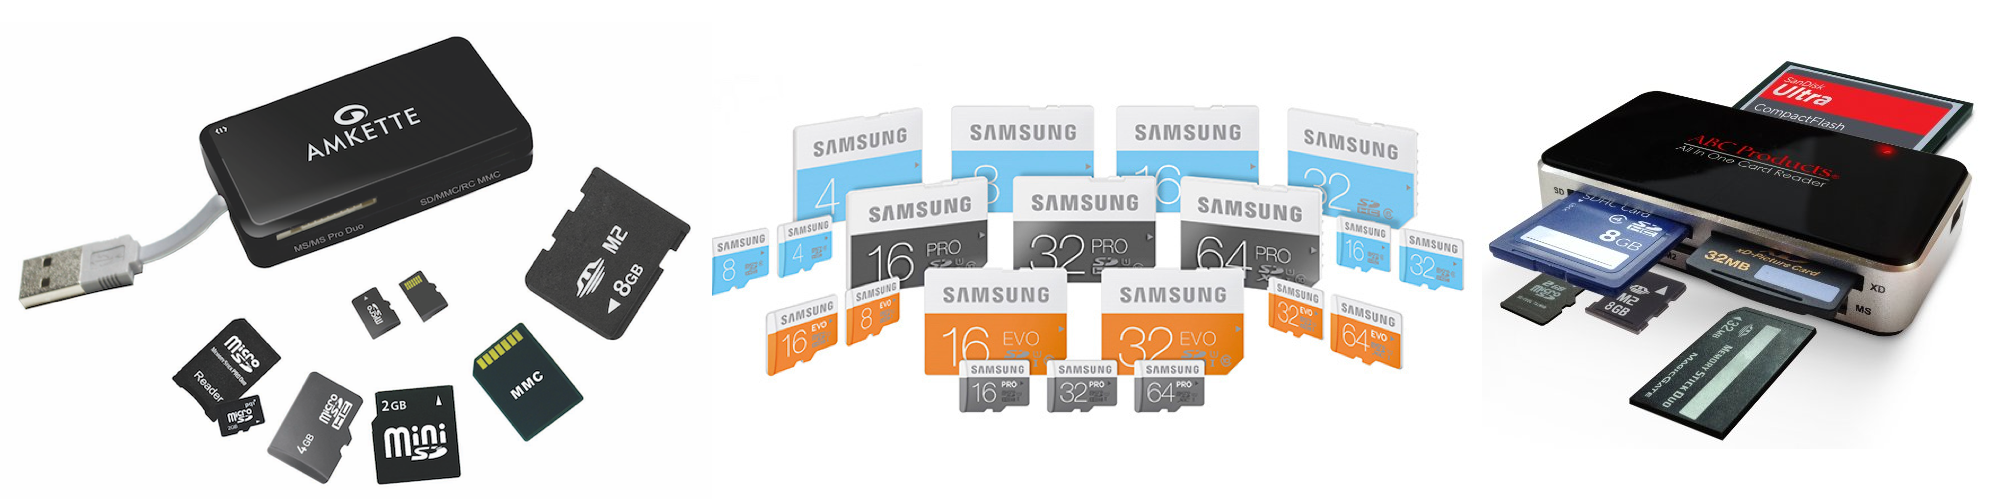 storage devices for gadgets